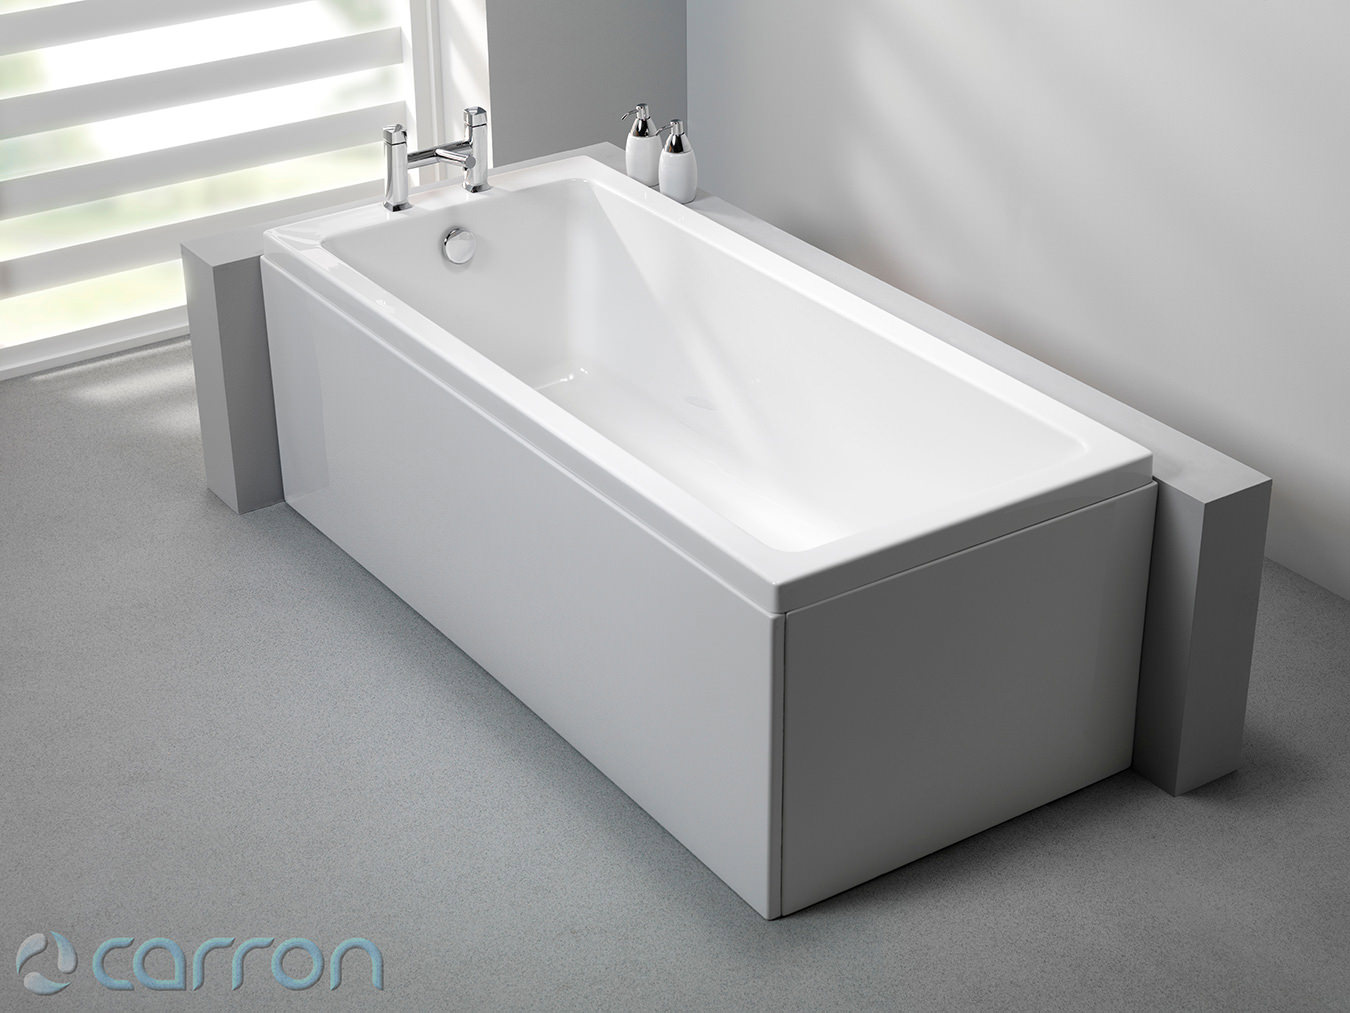 carron quantum single ended acrylic bath 1800 x 800mm